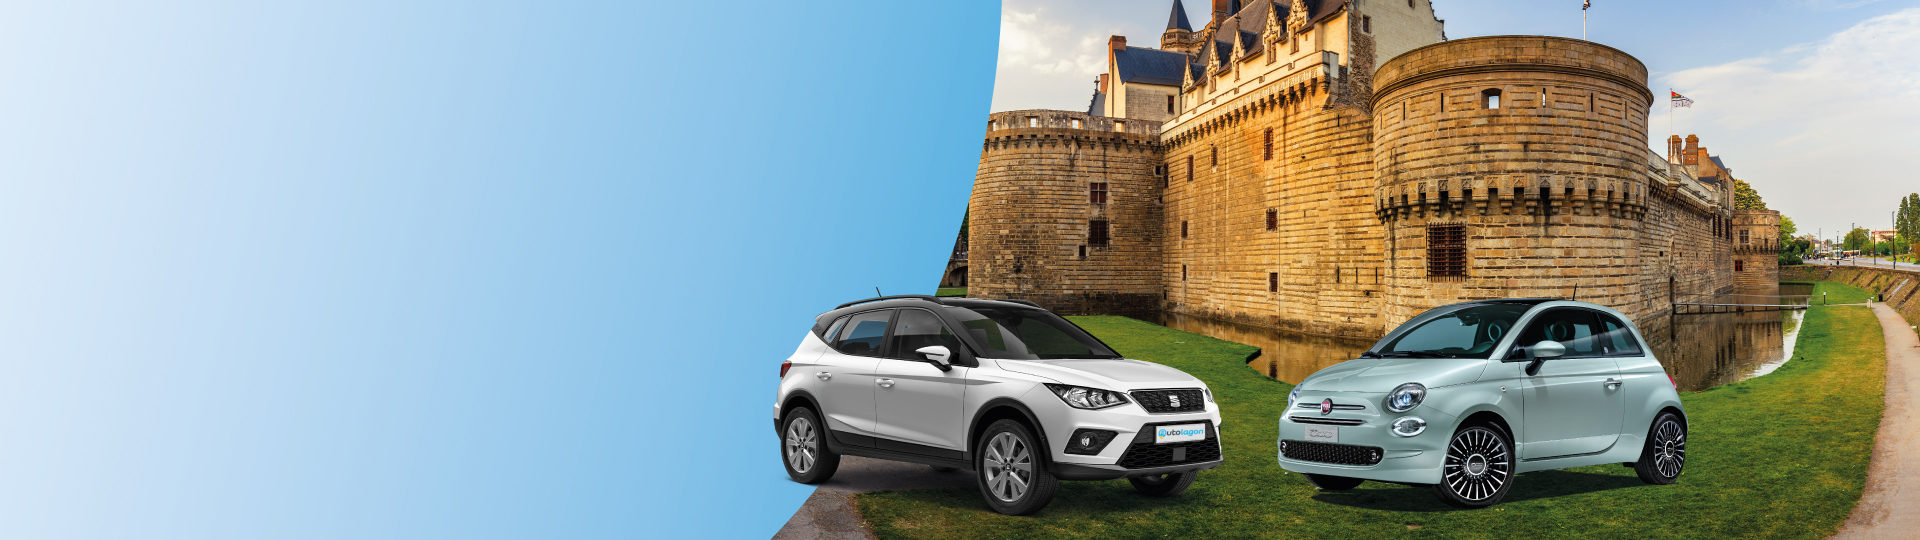 Book your car at the best price in Nantes